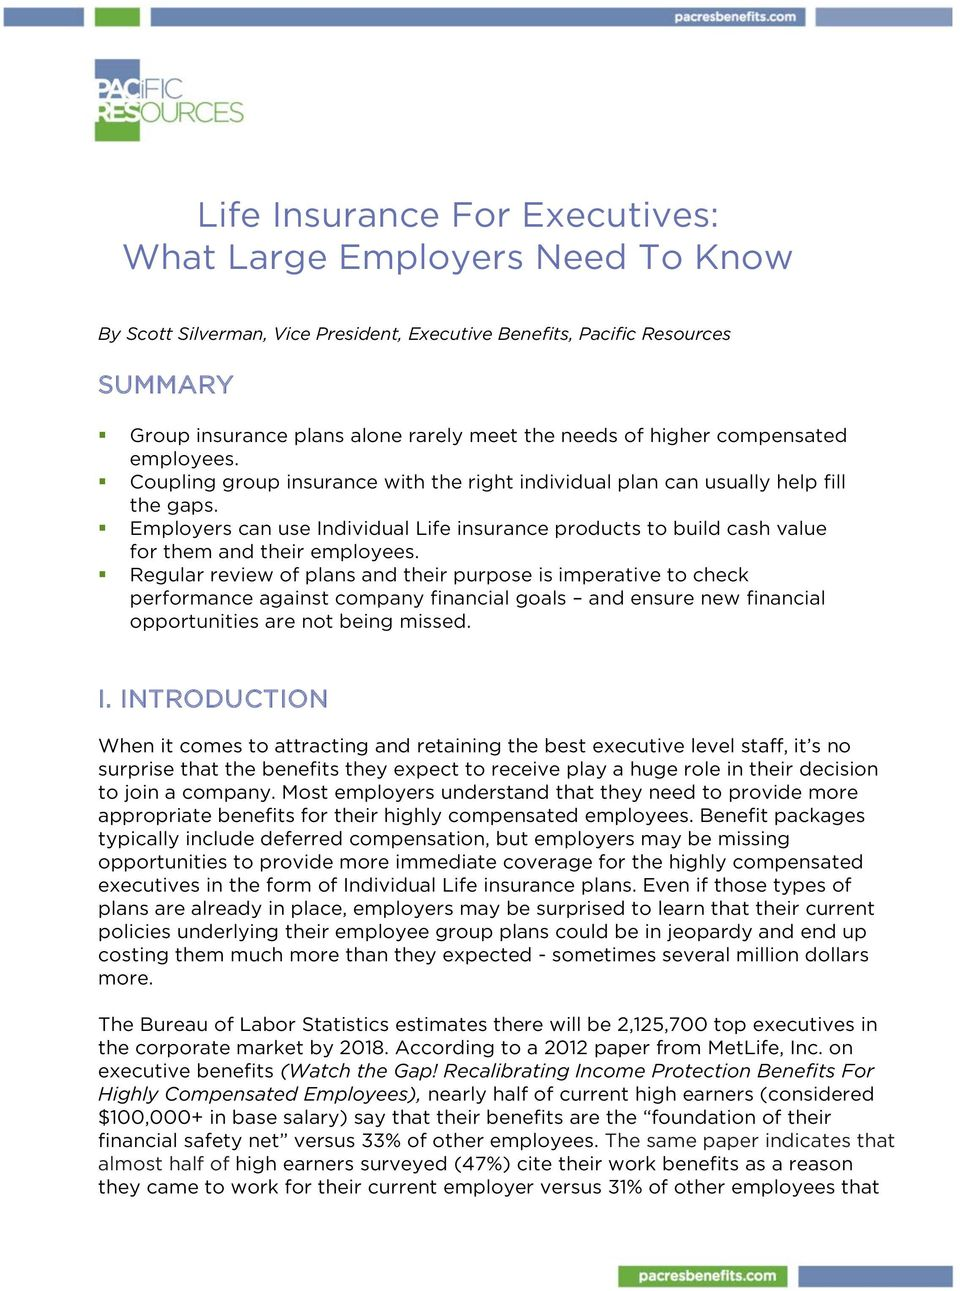 Employers can use Individual Life insurance products to build cash value for them and their employees.